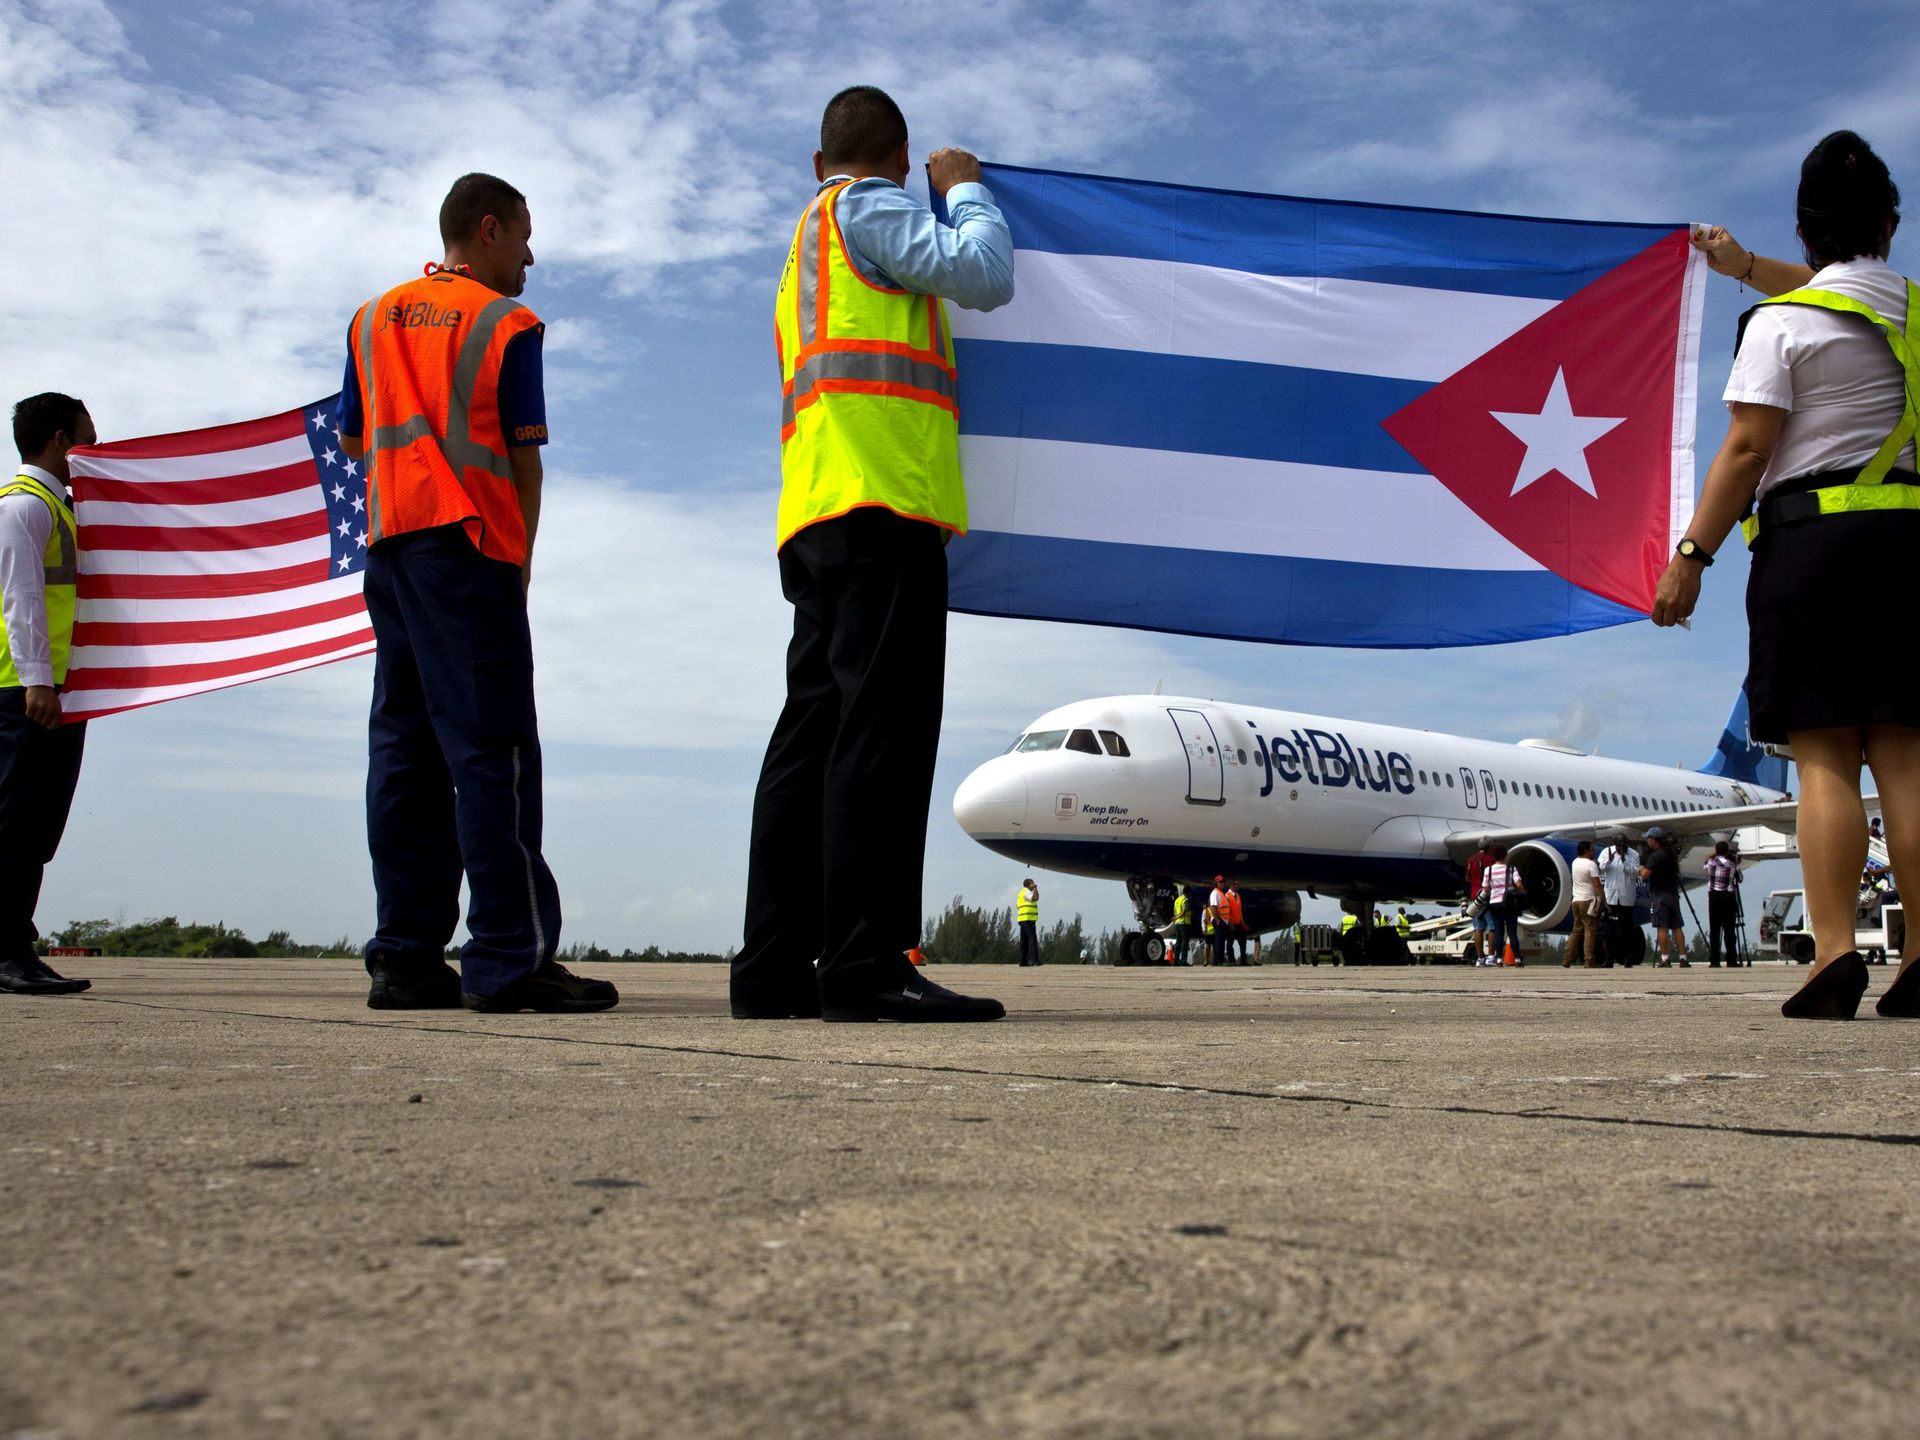 First U.S. commercial flight to Cuba since 1961. From Fort Lauderdale to Santa Clara. Photo by USA Today.